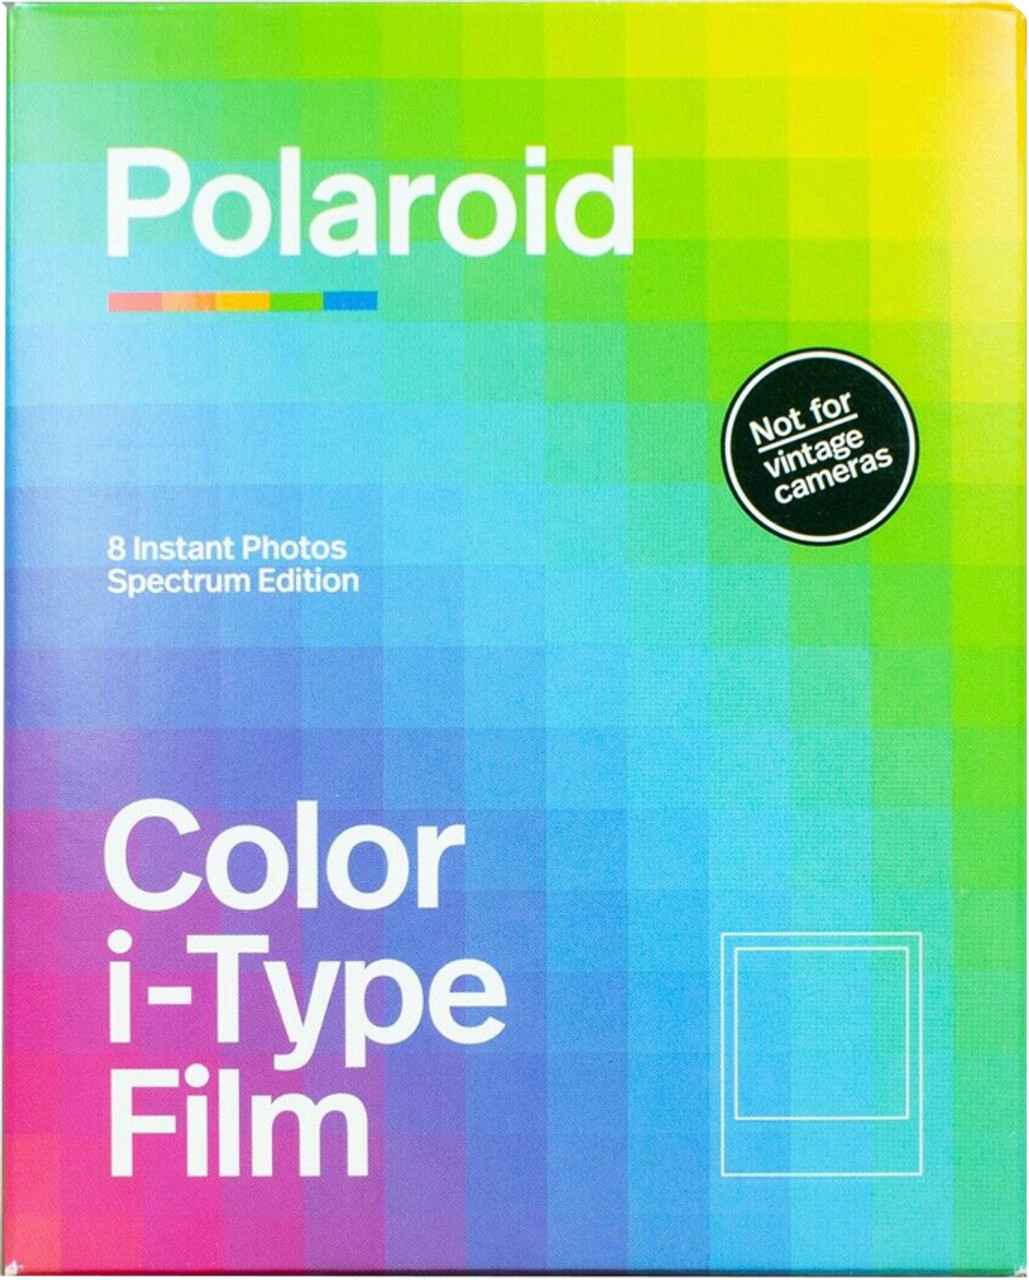 Polaroid i-Type Film Spectrum Edition